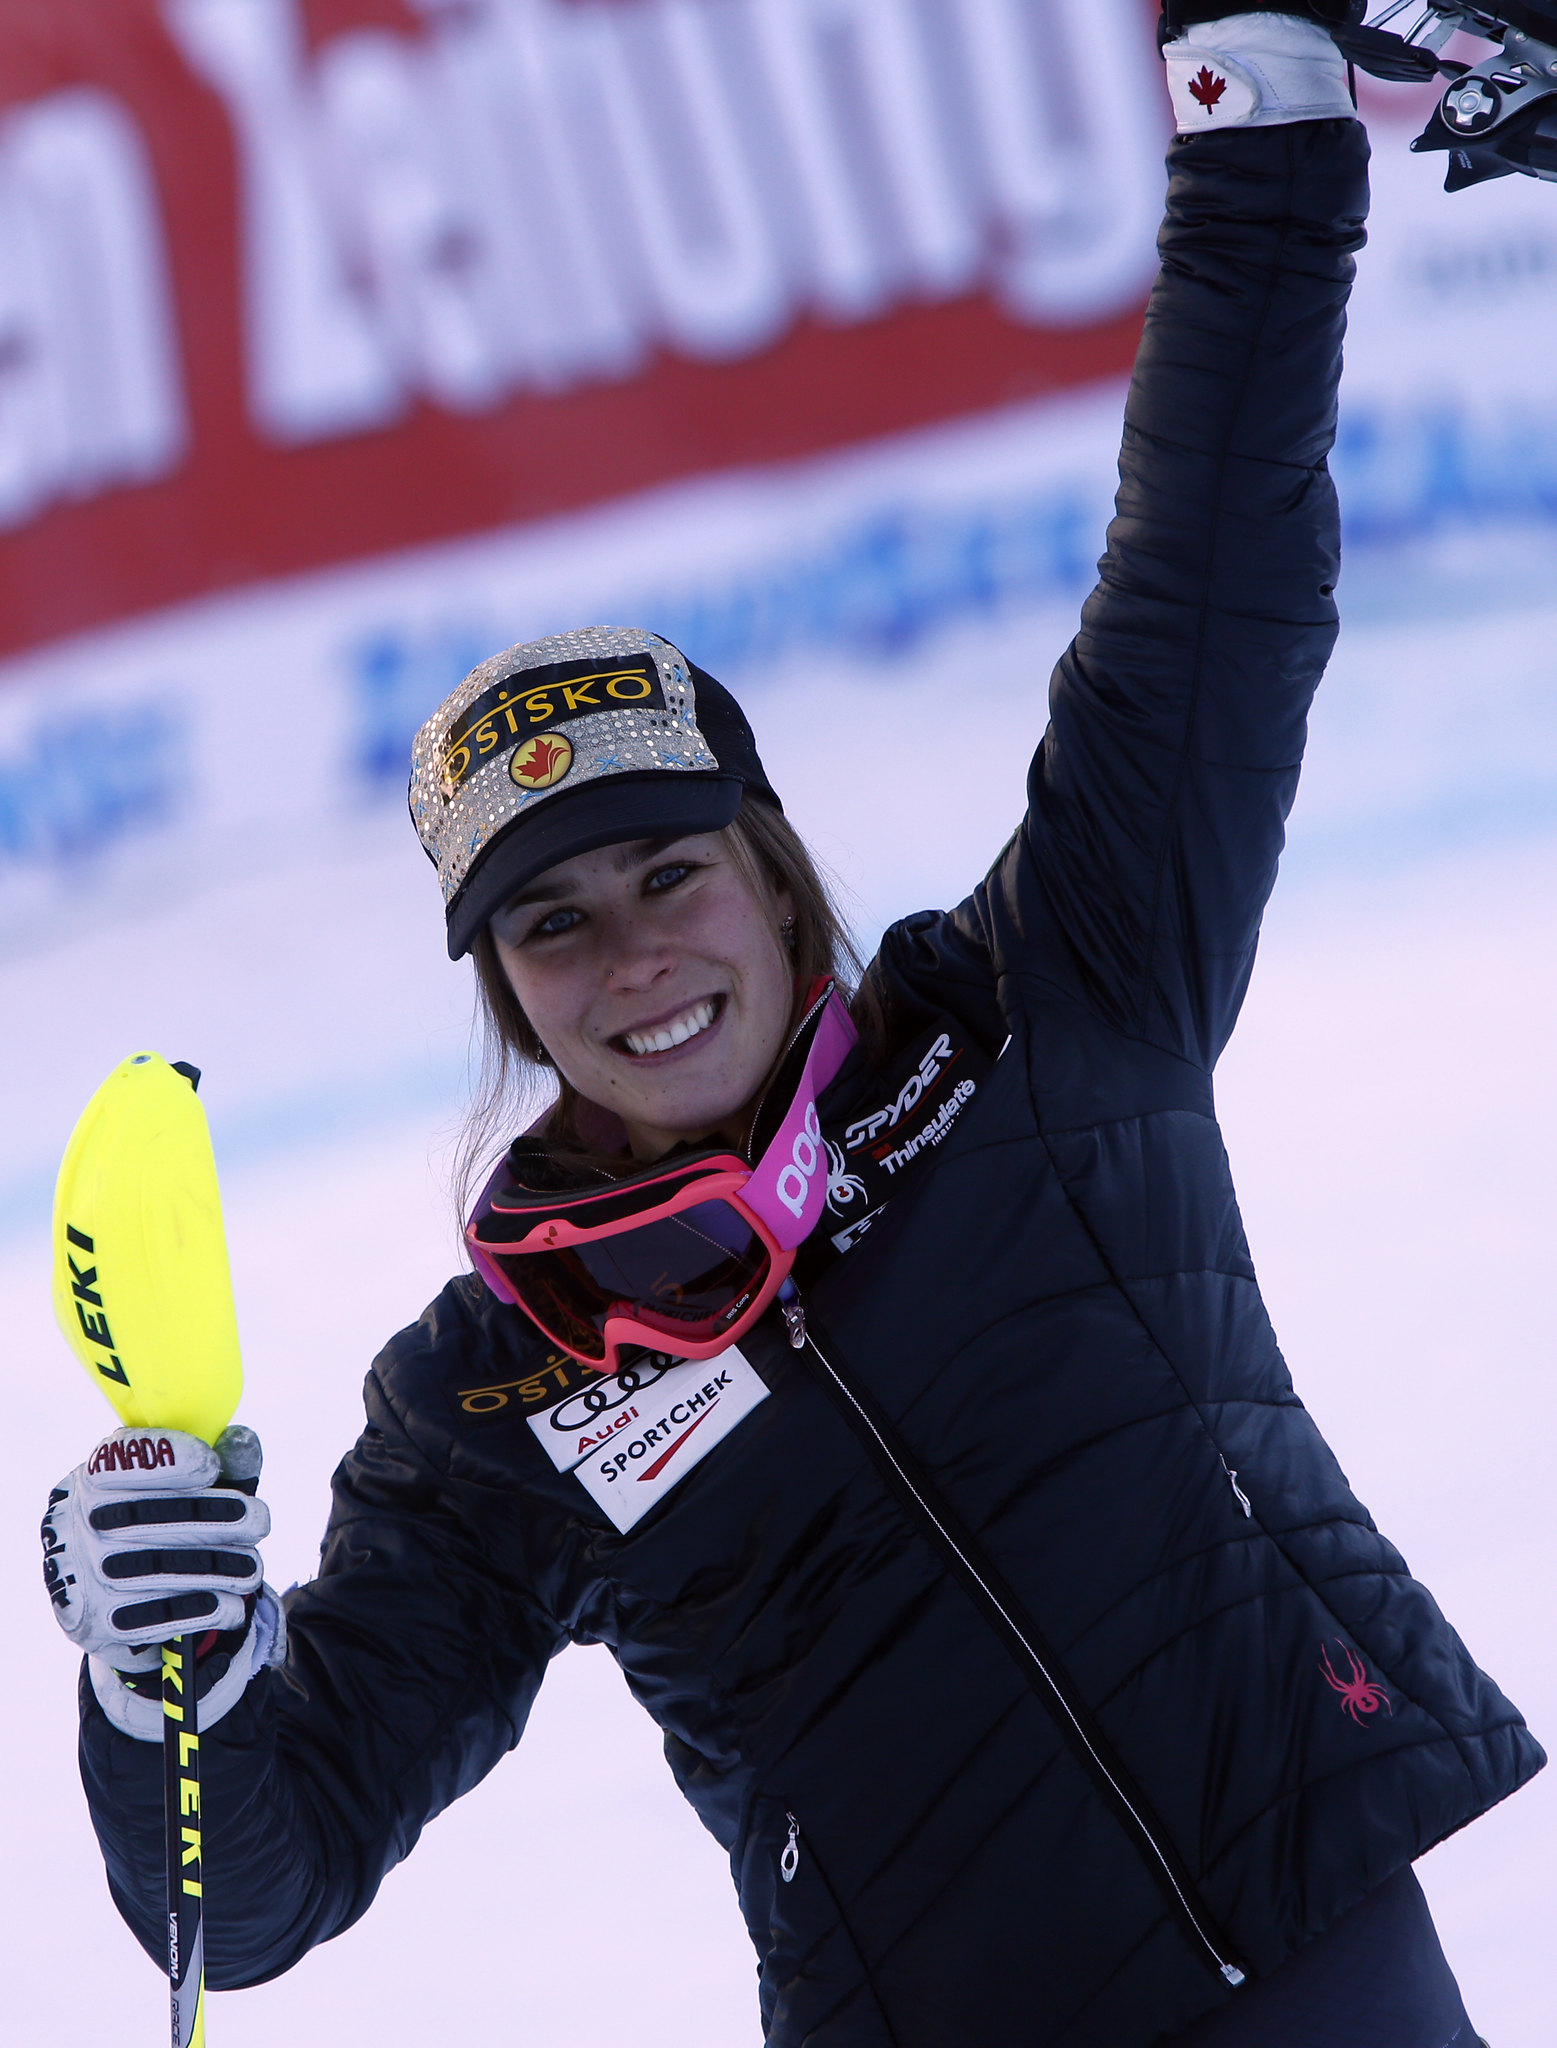 Gagnon celebrates a victory in Altenmarkt, AUT